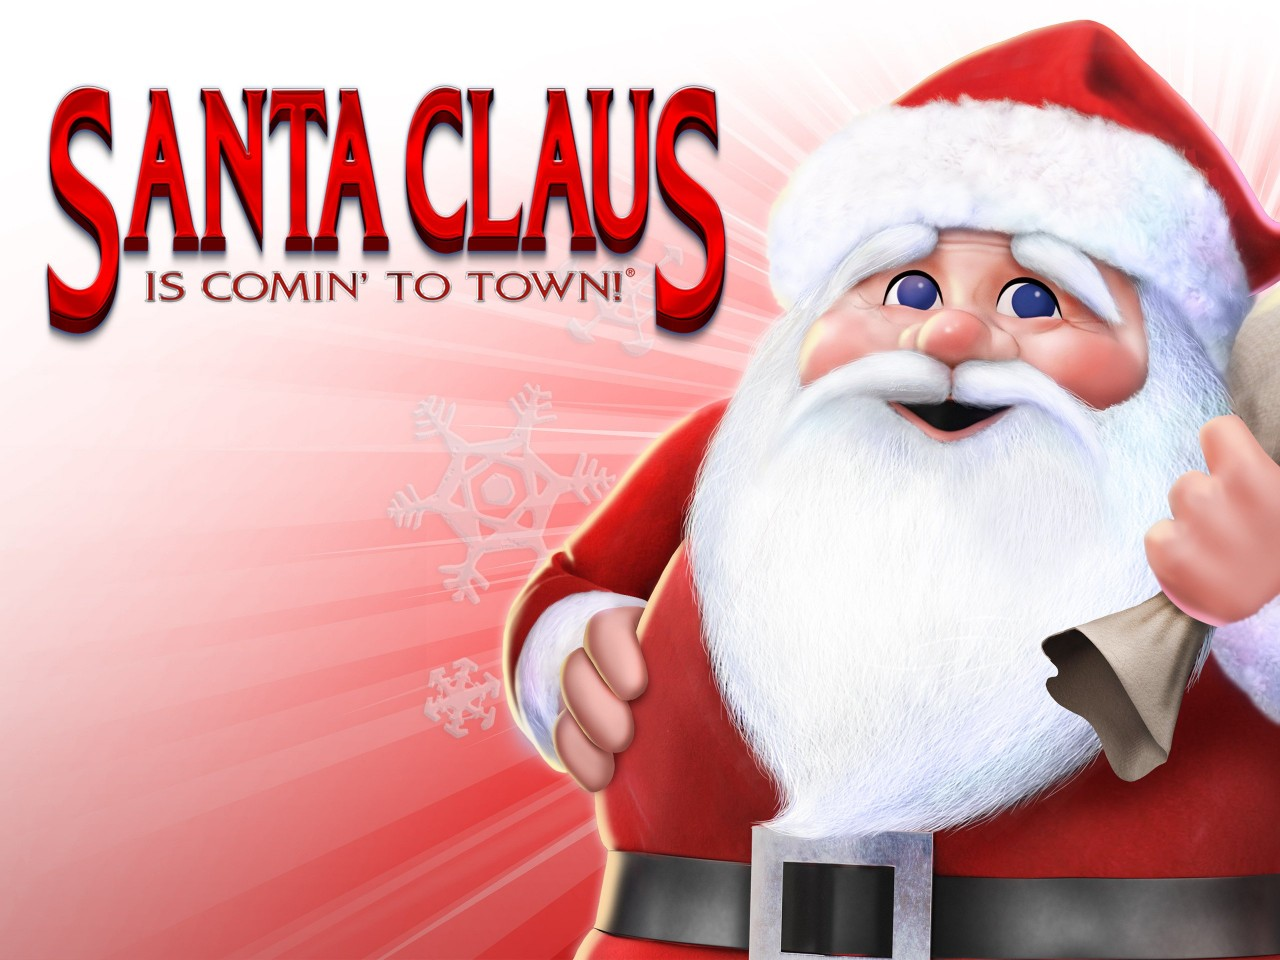 Landis Christmas Parade 2021 Watch The Christmas Parade Streaming Live This Year On Nov 28th